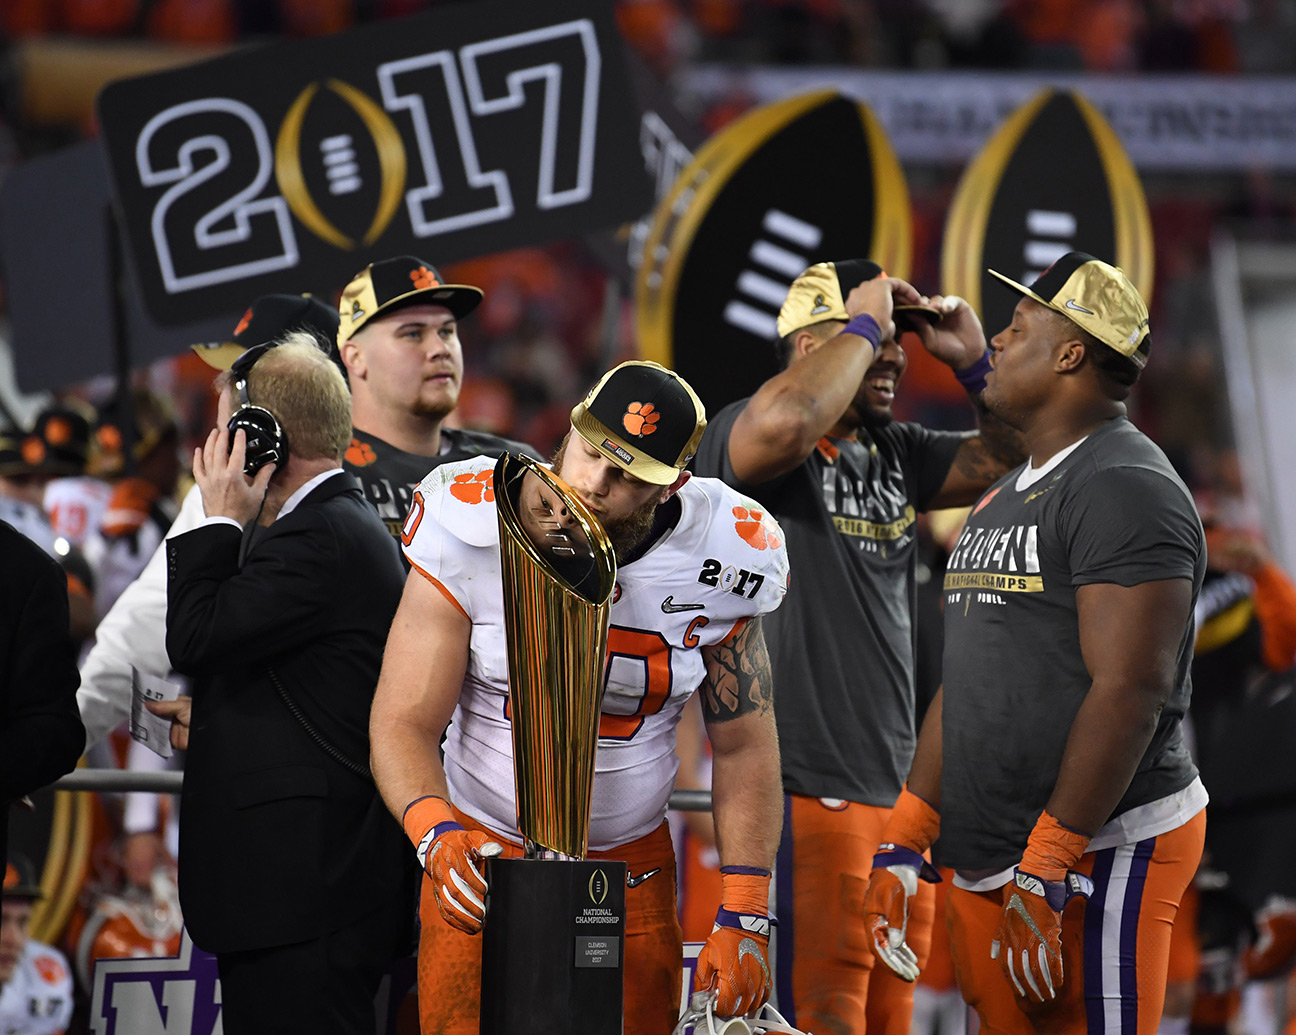 Cfp National Championship Alabama Clemson